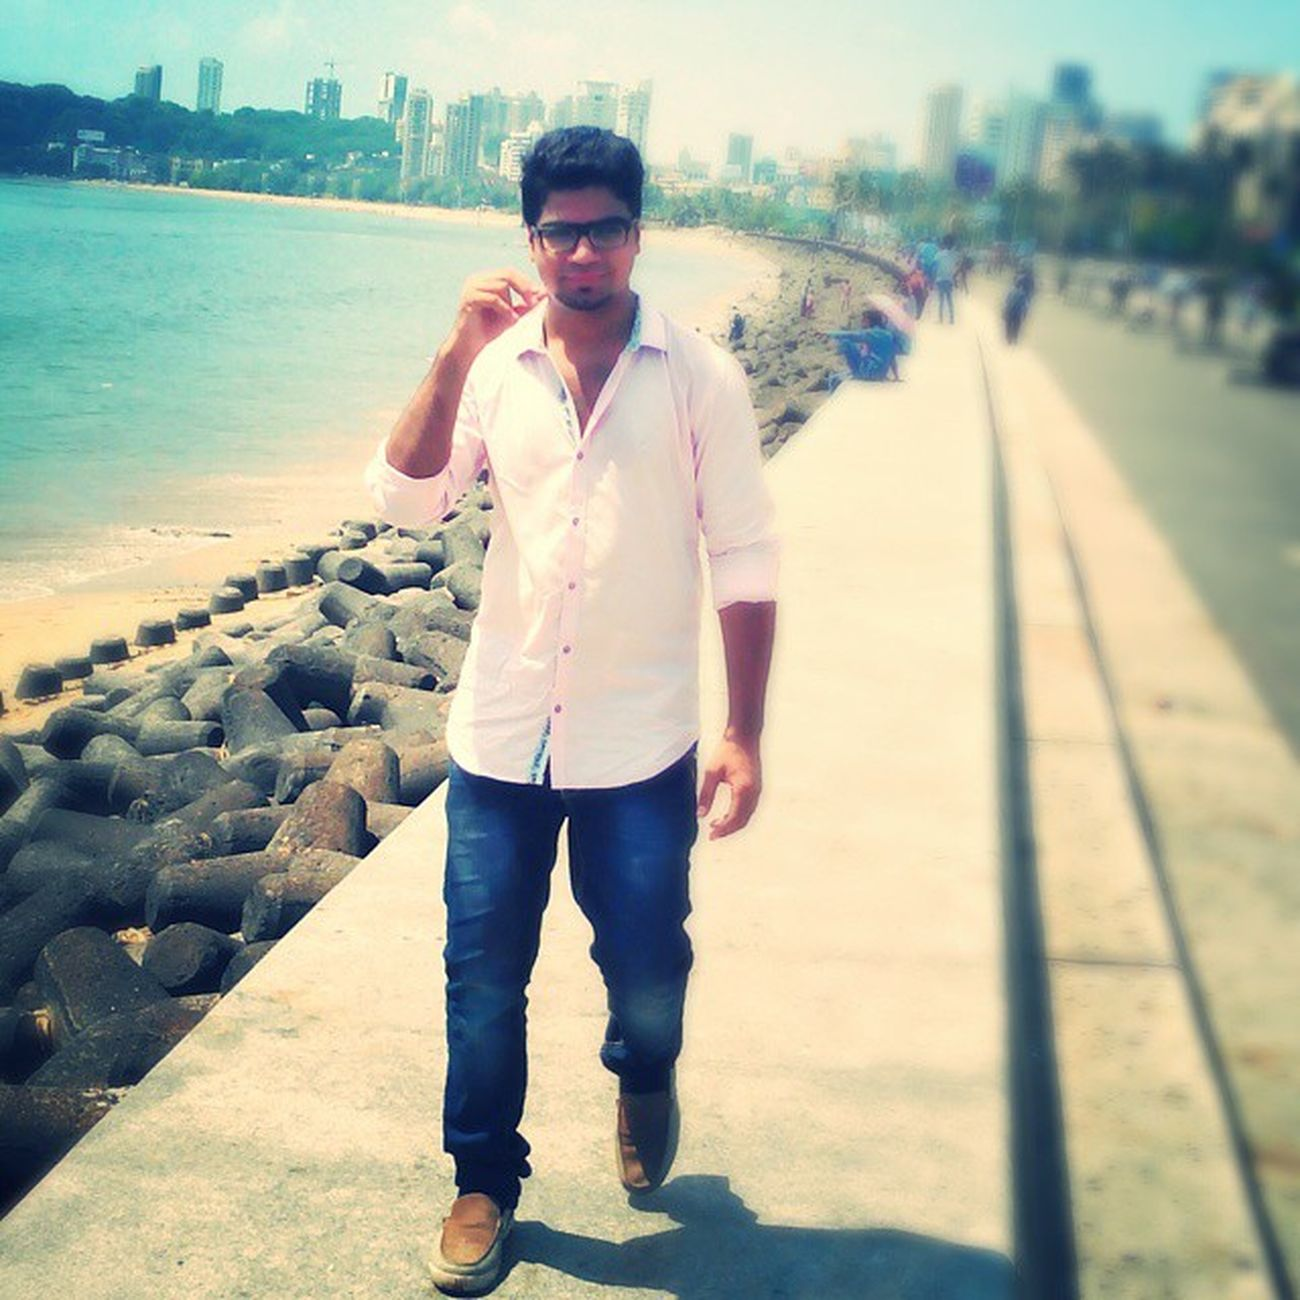 Candid photography Walking Sun Marinedrive Throwback Memories Instapic Memorableday